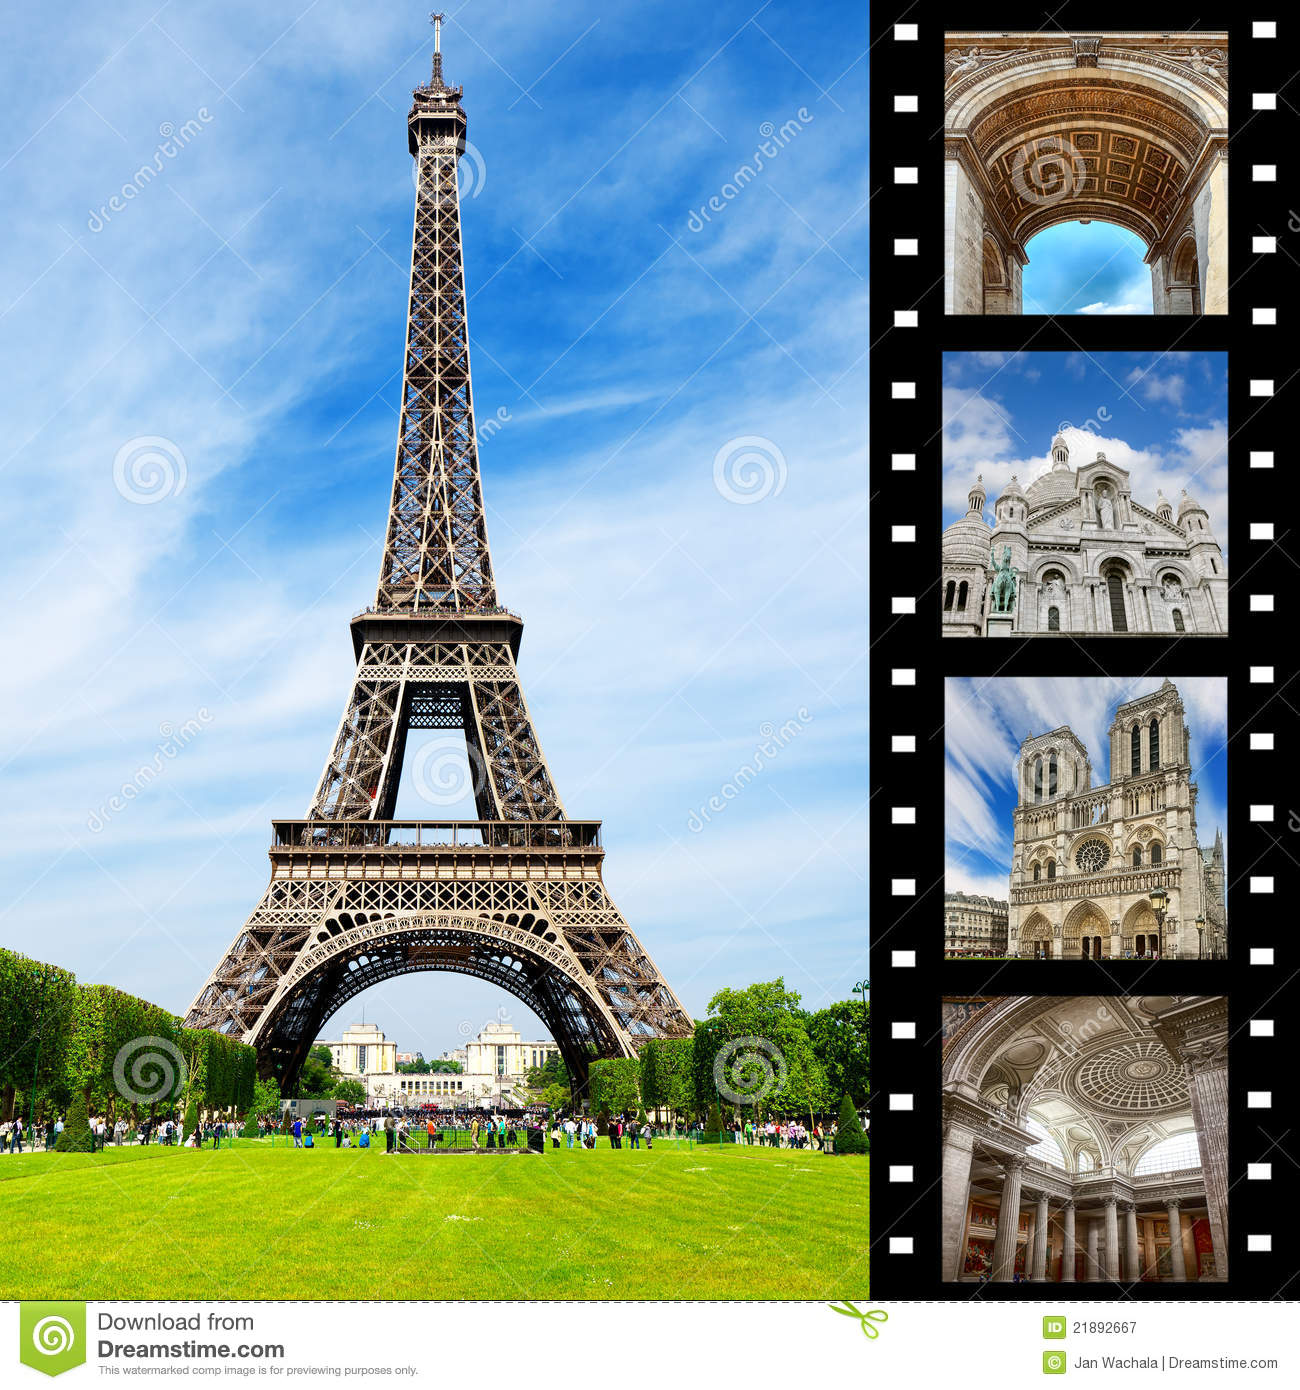 Pictures Of Beautiful Bedrooms And Living Rooms: Beautiful Paris Royalty Free Stock Photography